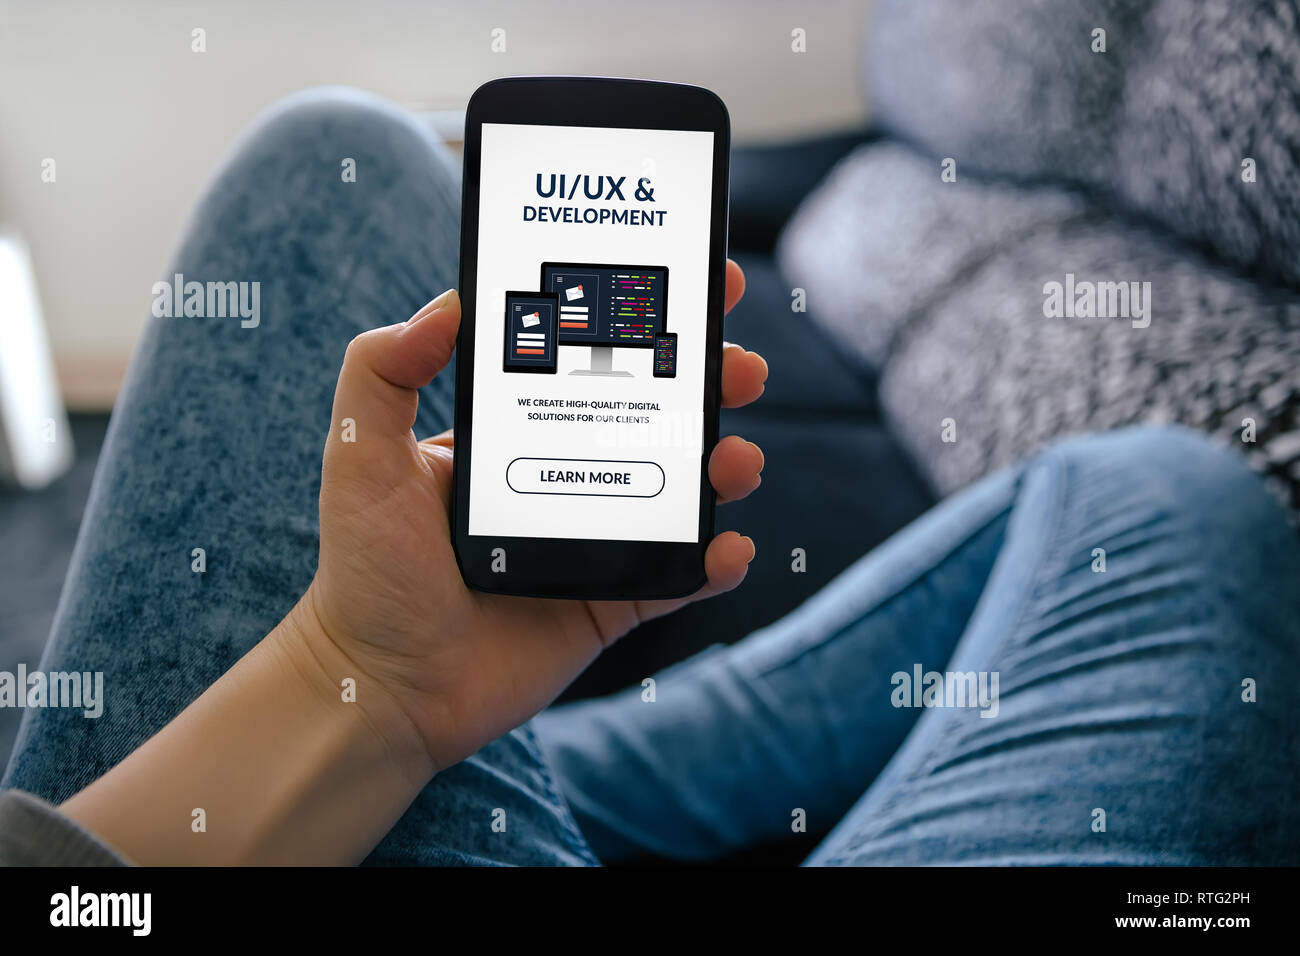 Girl holding smart phone with UI/UX design and development concept on screen. All screen content is designed by me - Stock Image